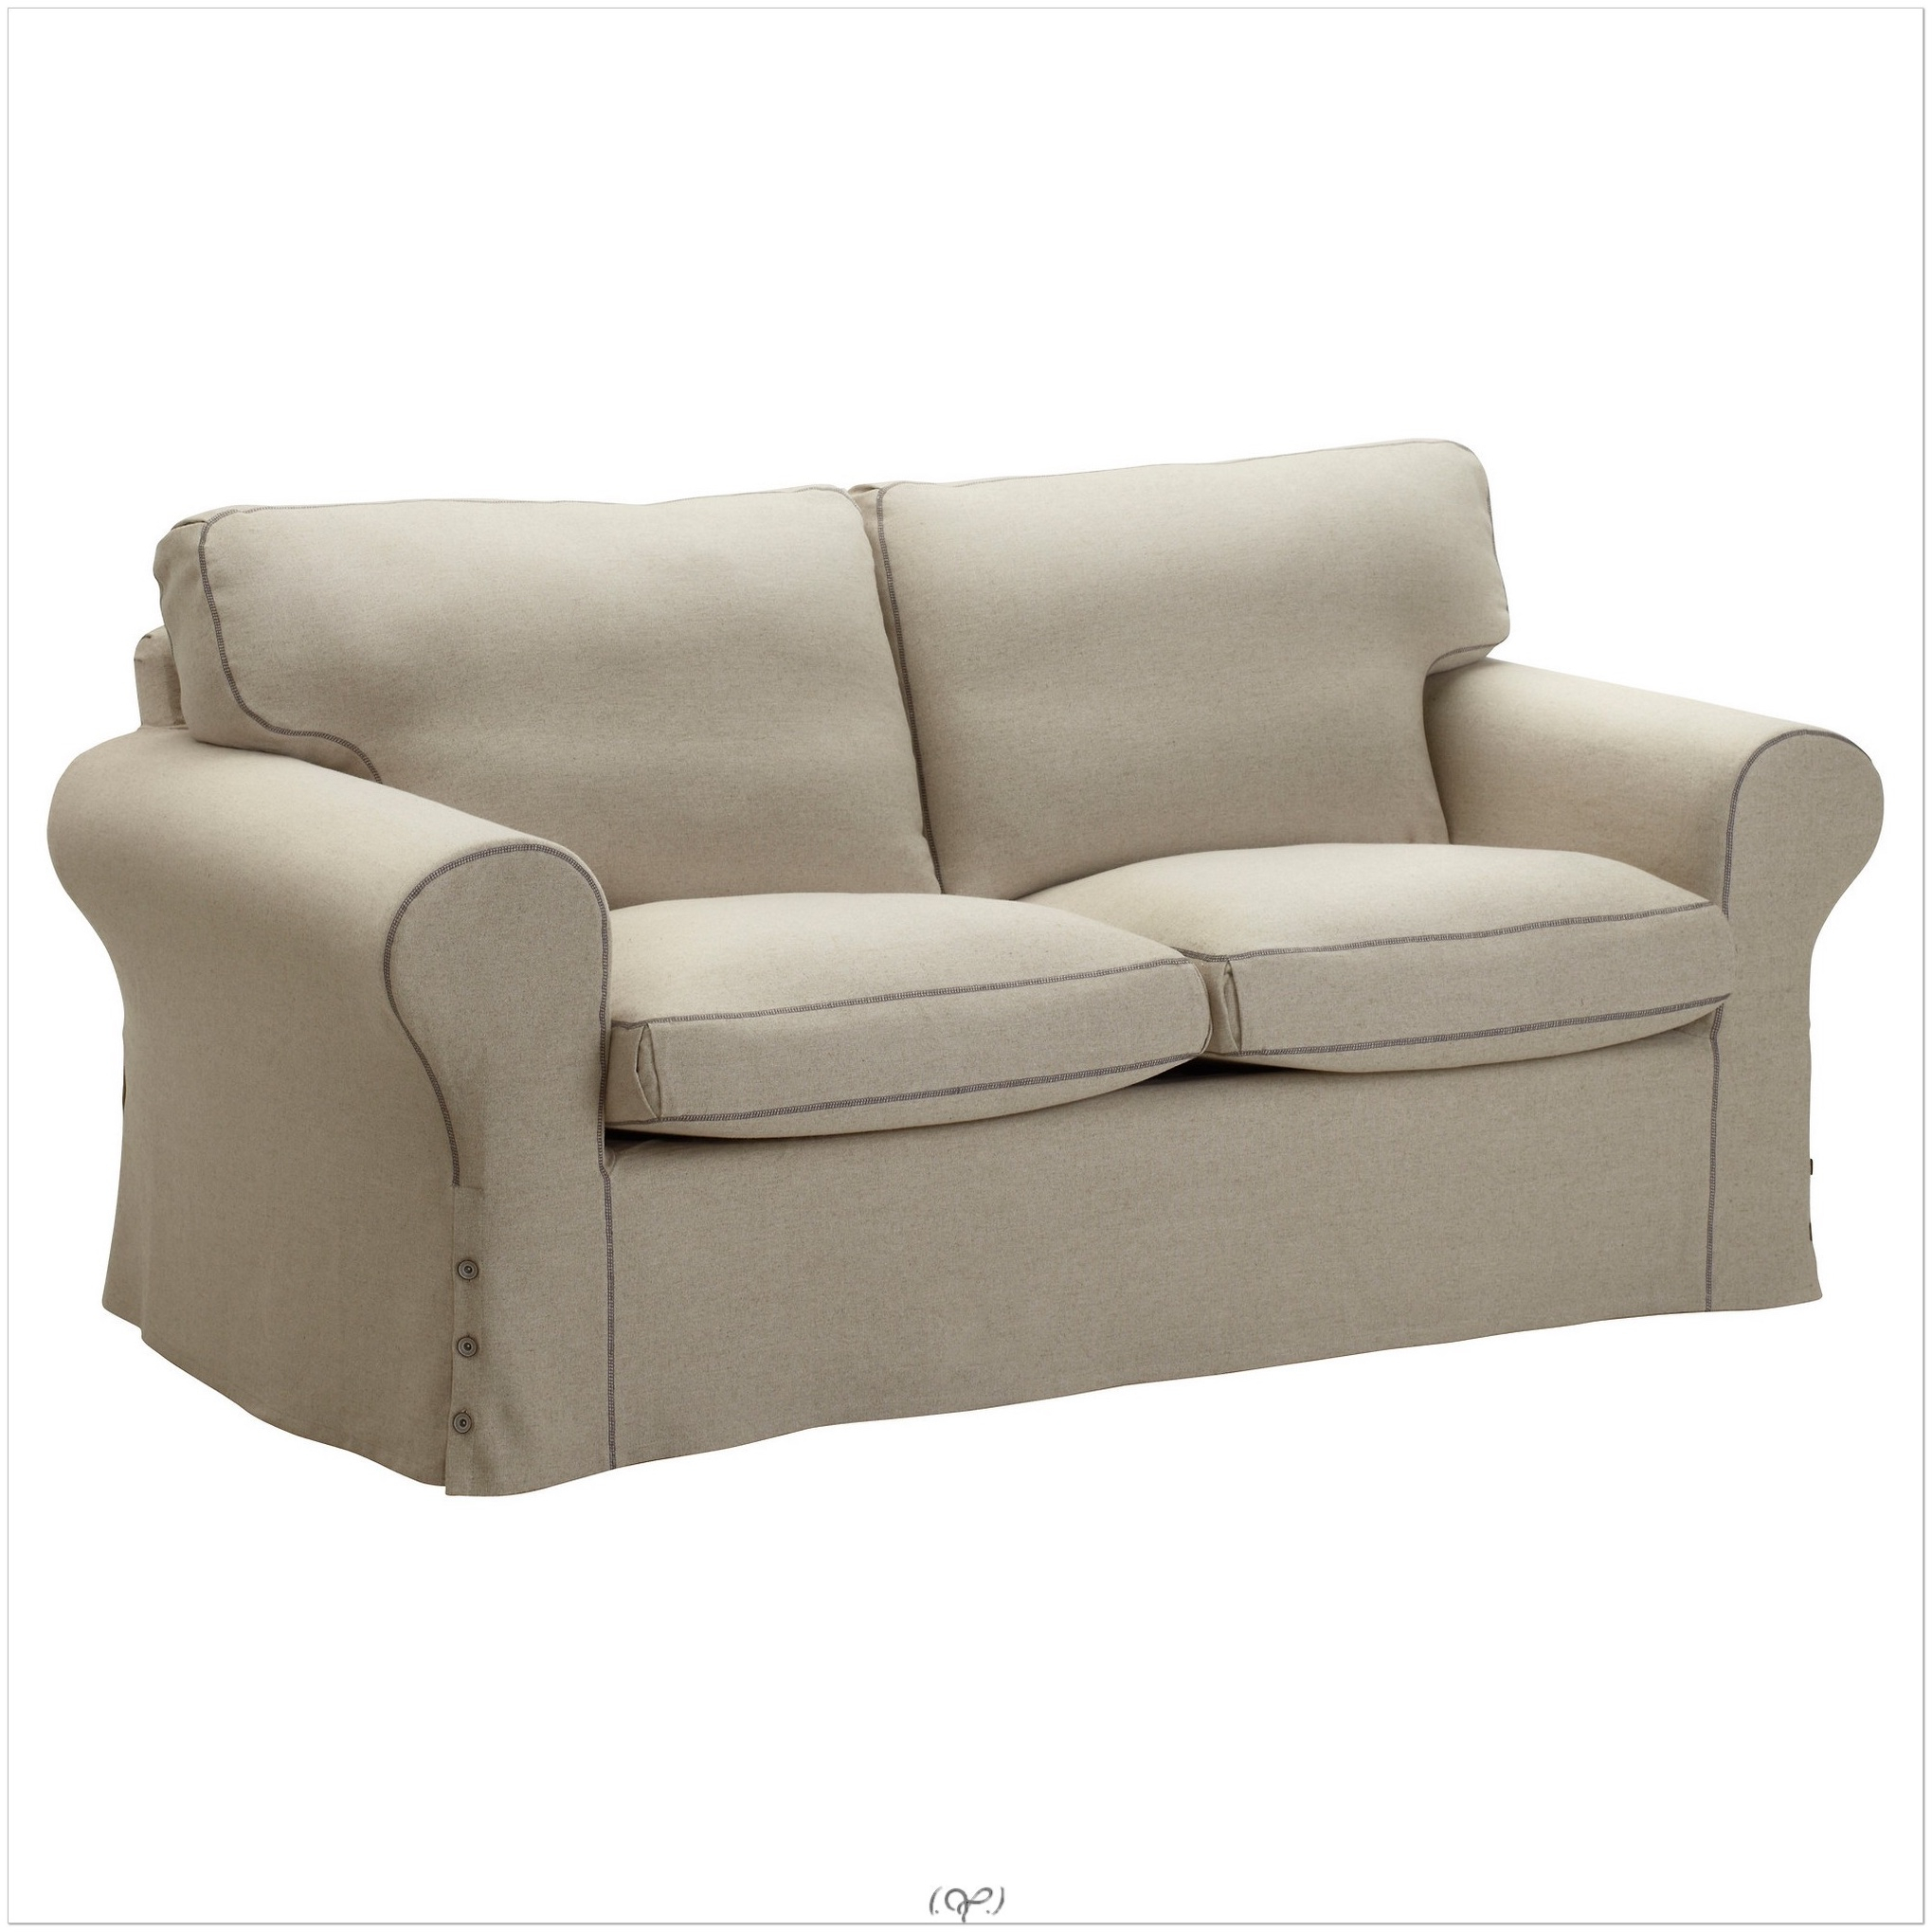 Chair Immaculate Jcpenney Sofas With Mesmerizing Couches in sizing 2039 X 2039